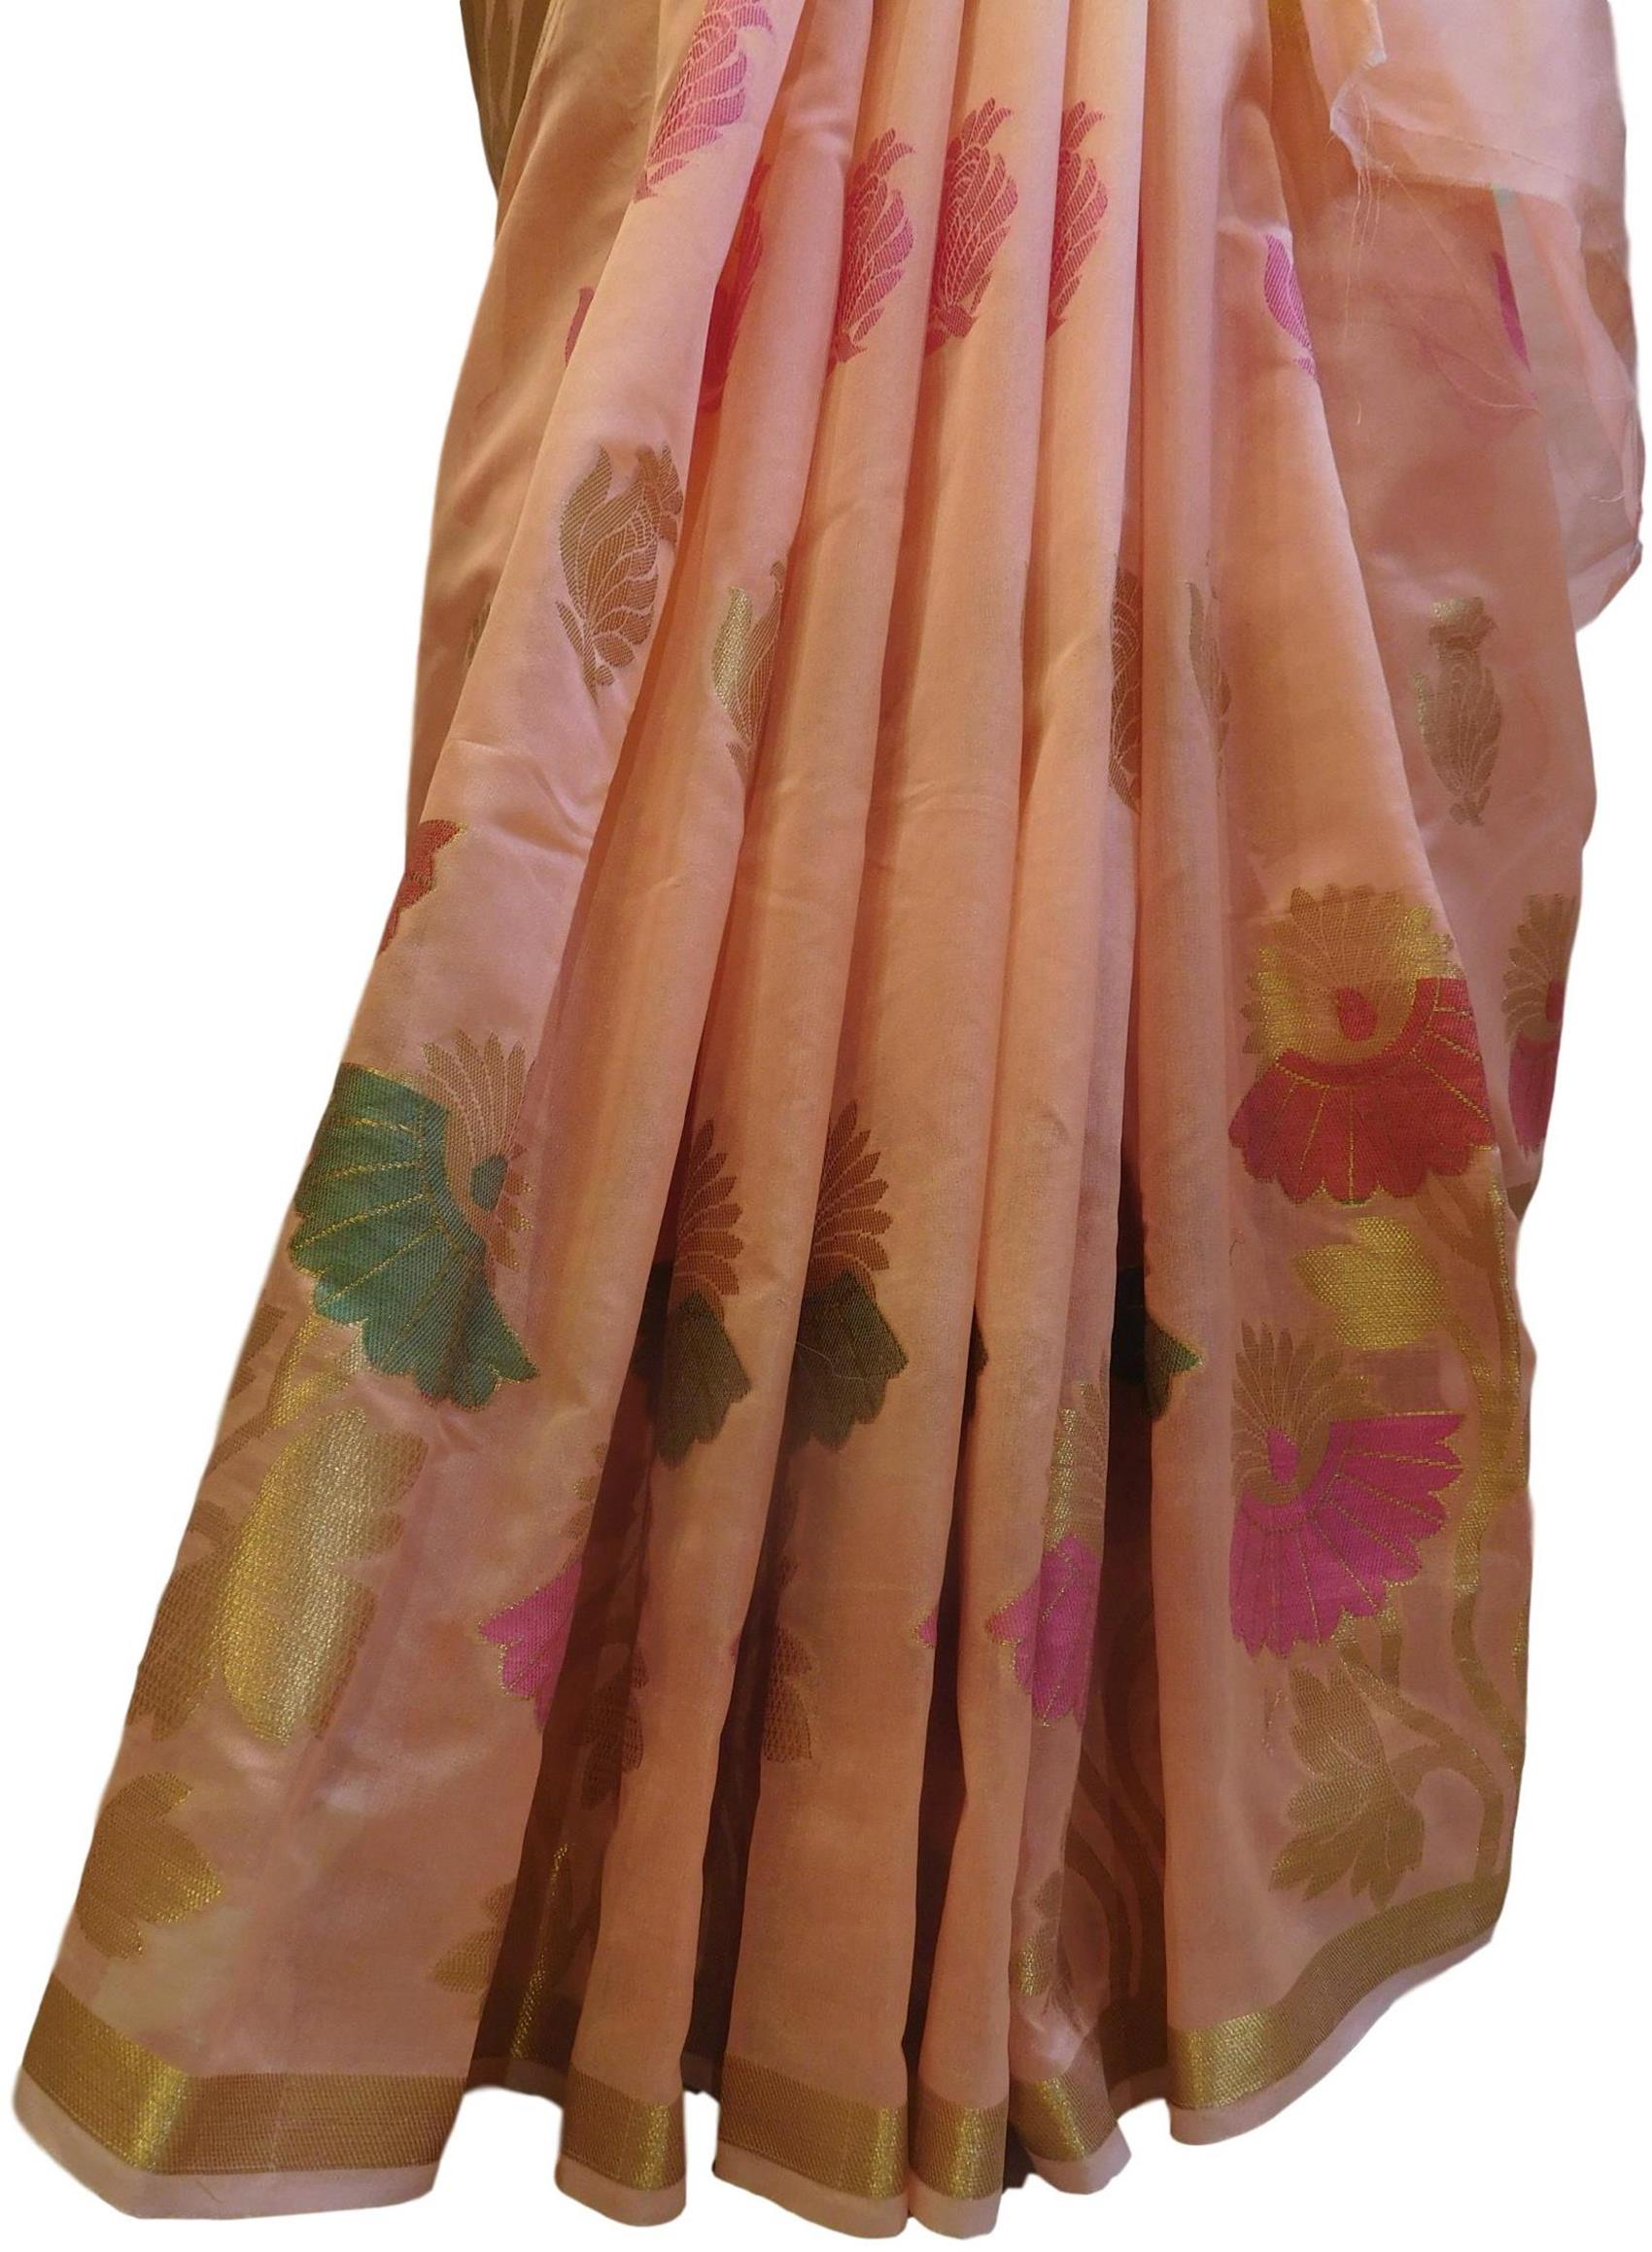 Peach Traditional Designer Wedding Hand Weaven Pure Benarasi Zari Work Saree Sari With Blouse BH102F